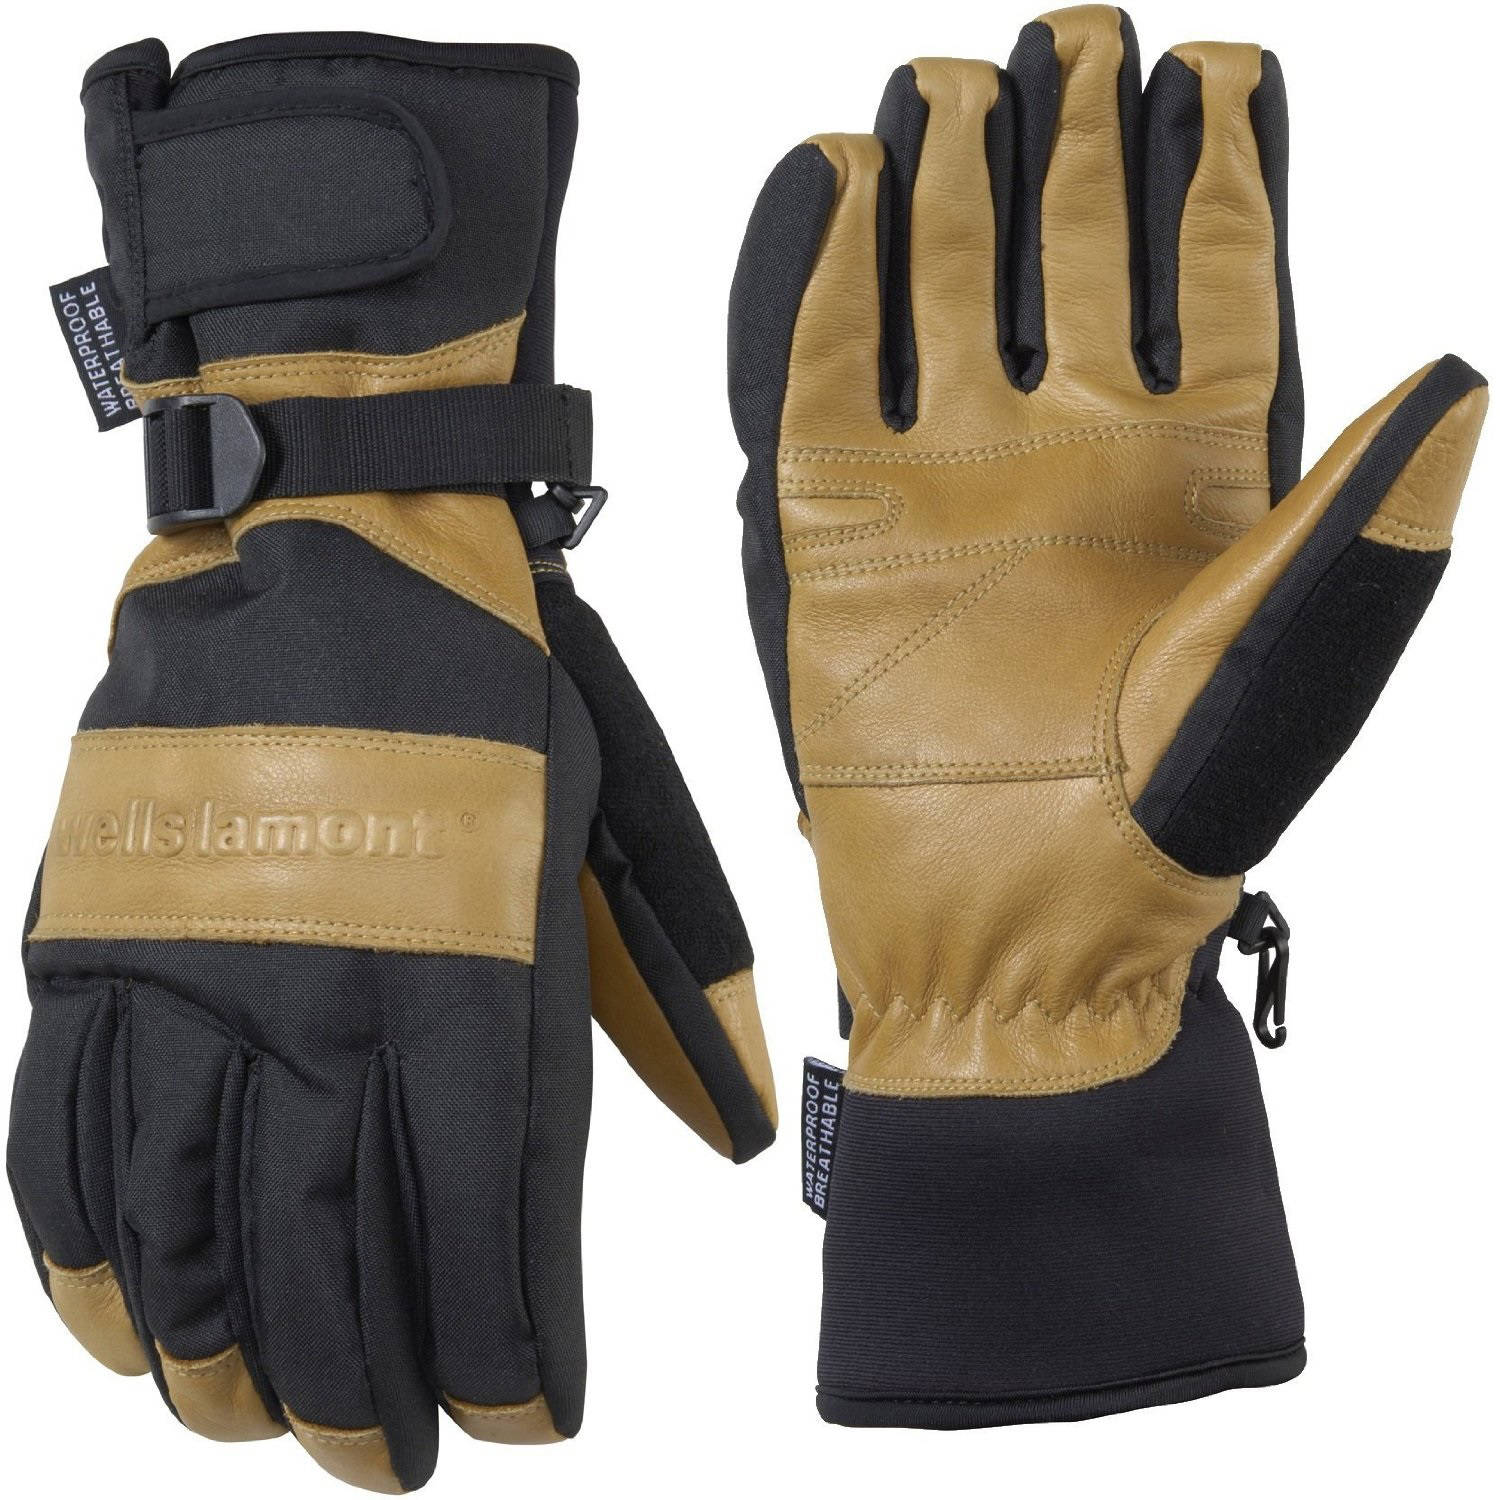 Wells Lamont Grips Gold Insulated Waterproof Gloves for Men, XL